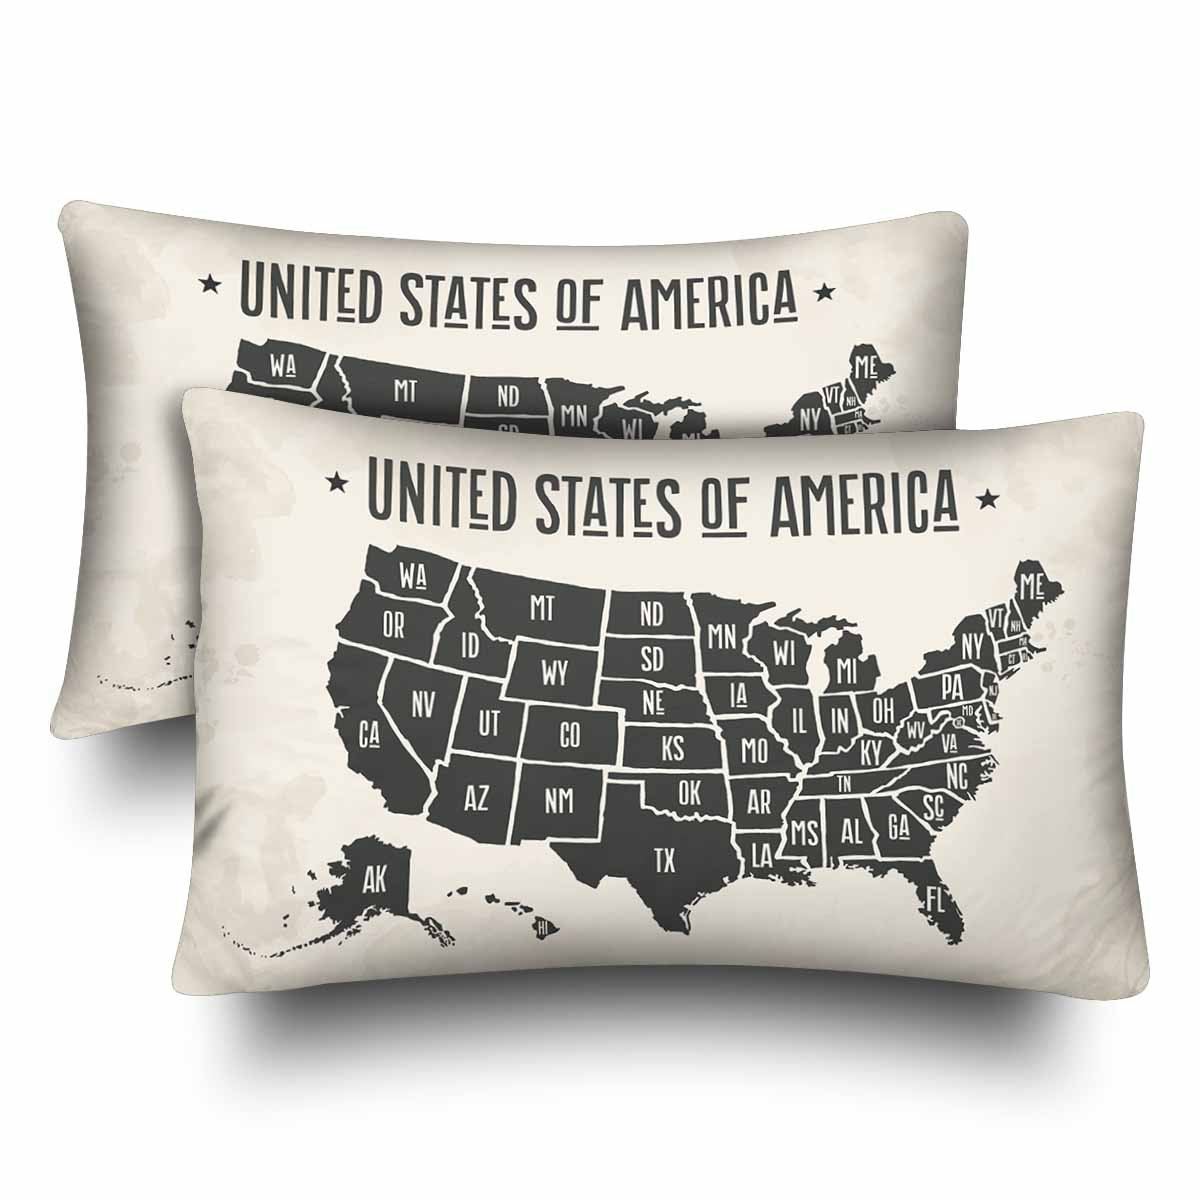 InterestPrint Map of United States of America with State Names Pillow Cases Pillowcase Standard Size 20x30 Set of 2, Black And White Map of USA Rectangle Pillow Covers for Home Bedding Decorative